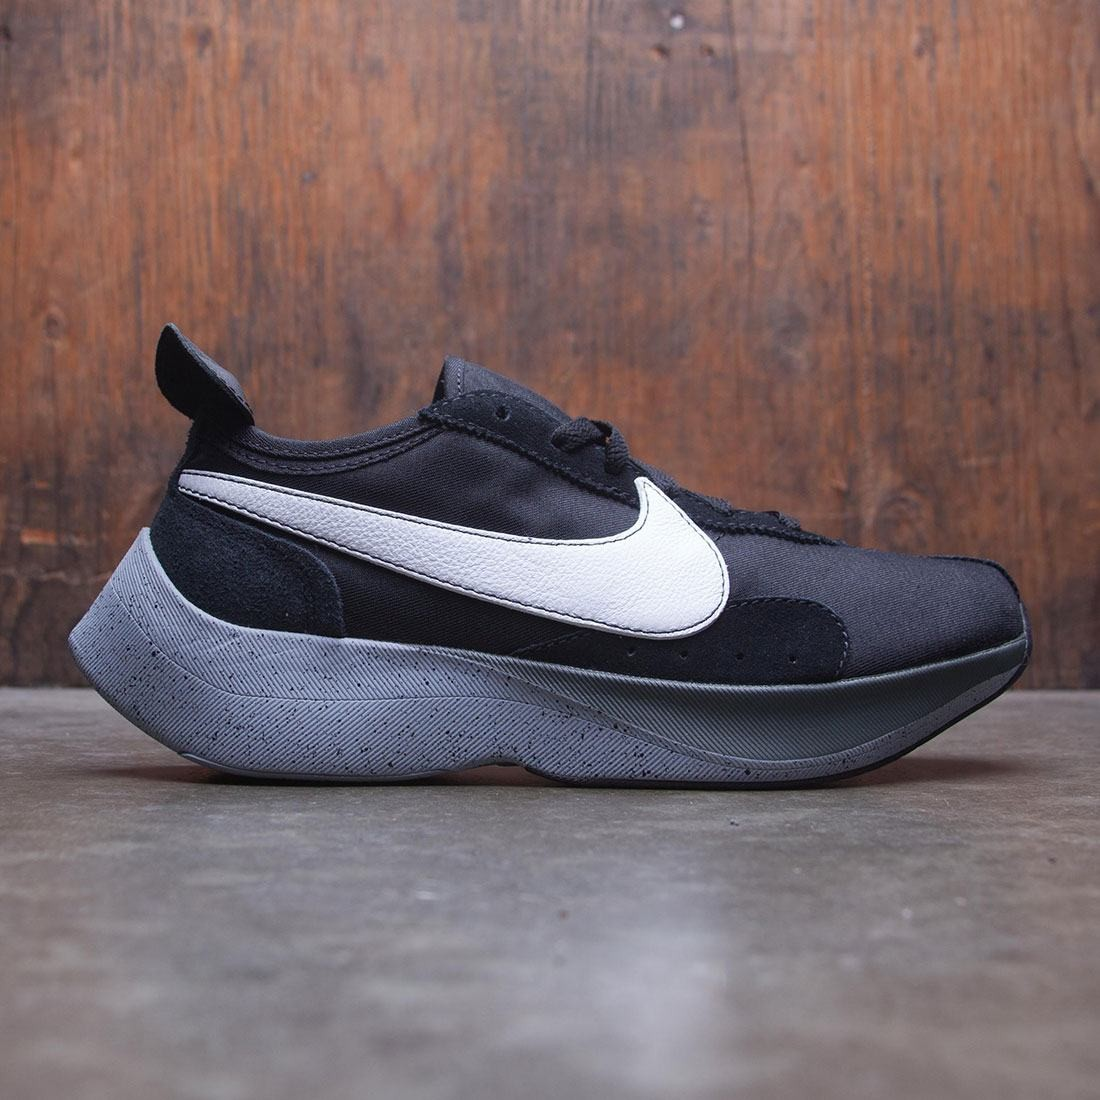 new product 162c9 44f91 nike men moon racer black white wolf grey dark grey